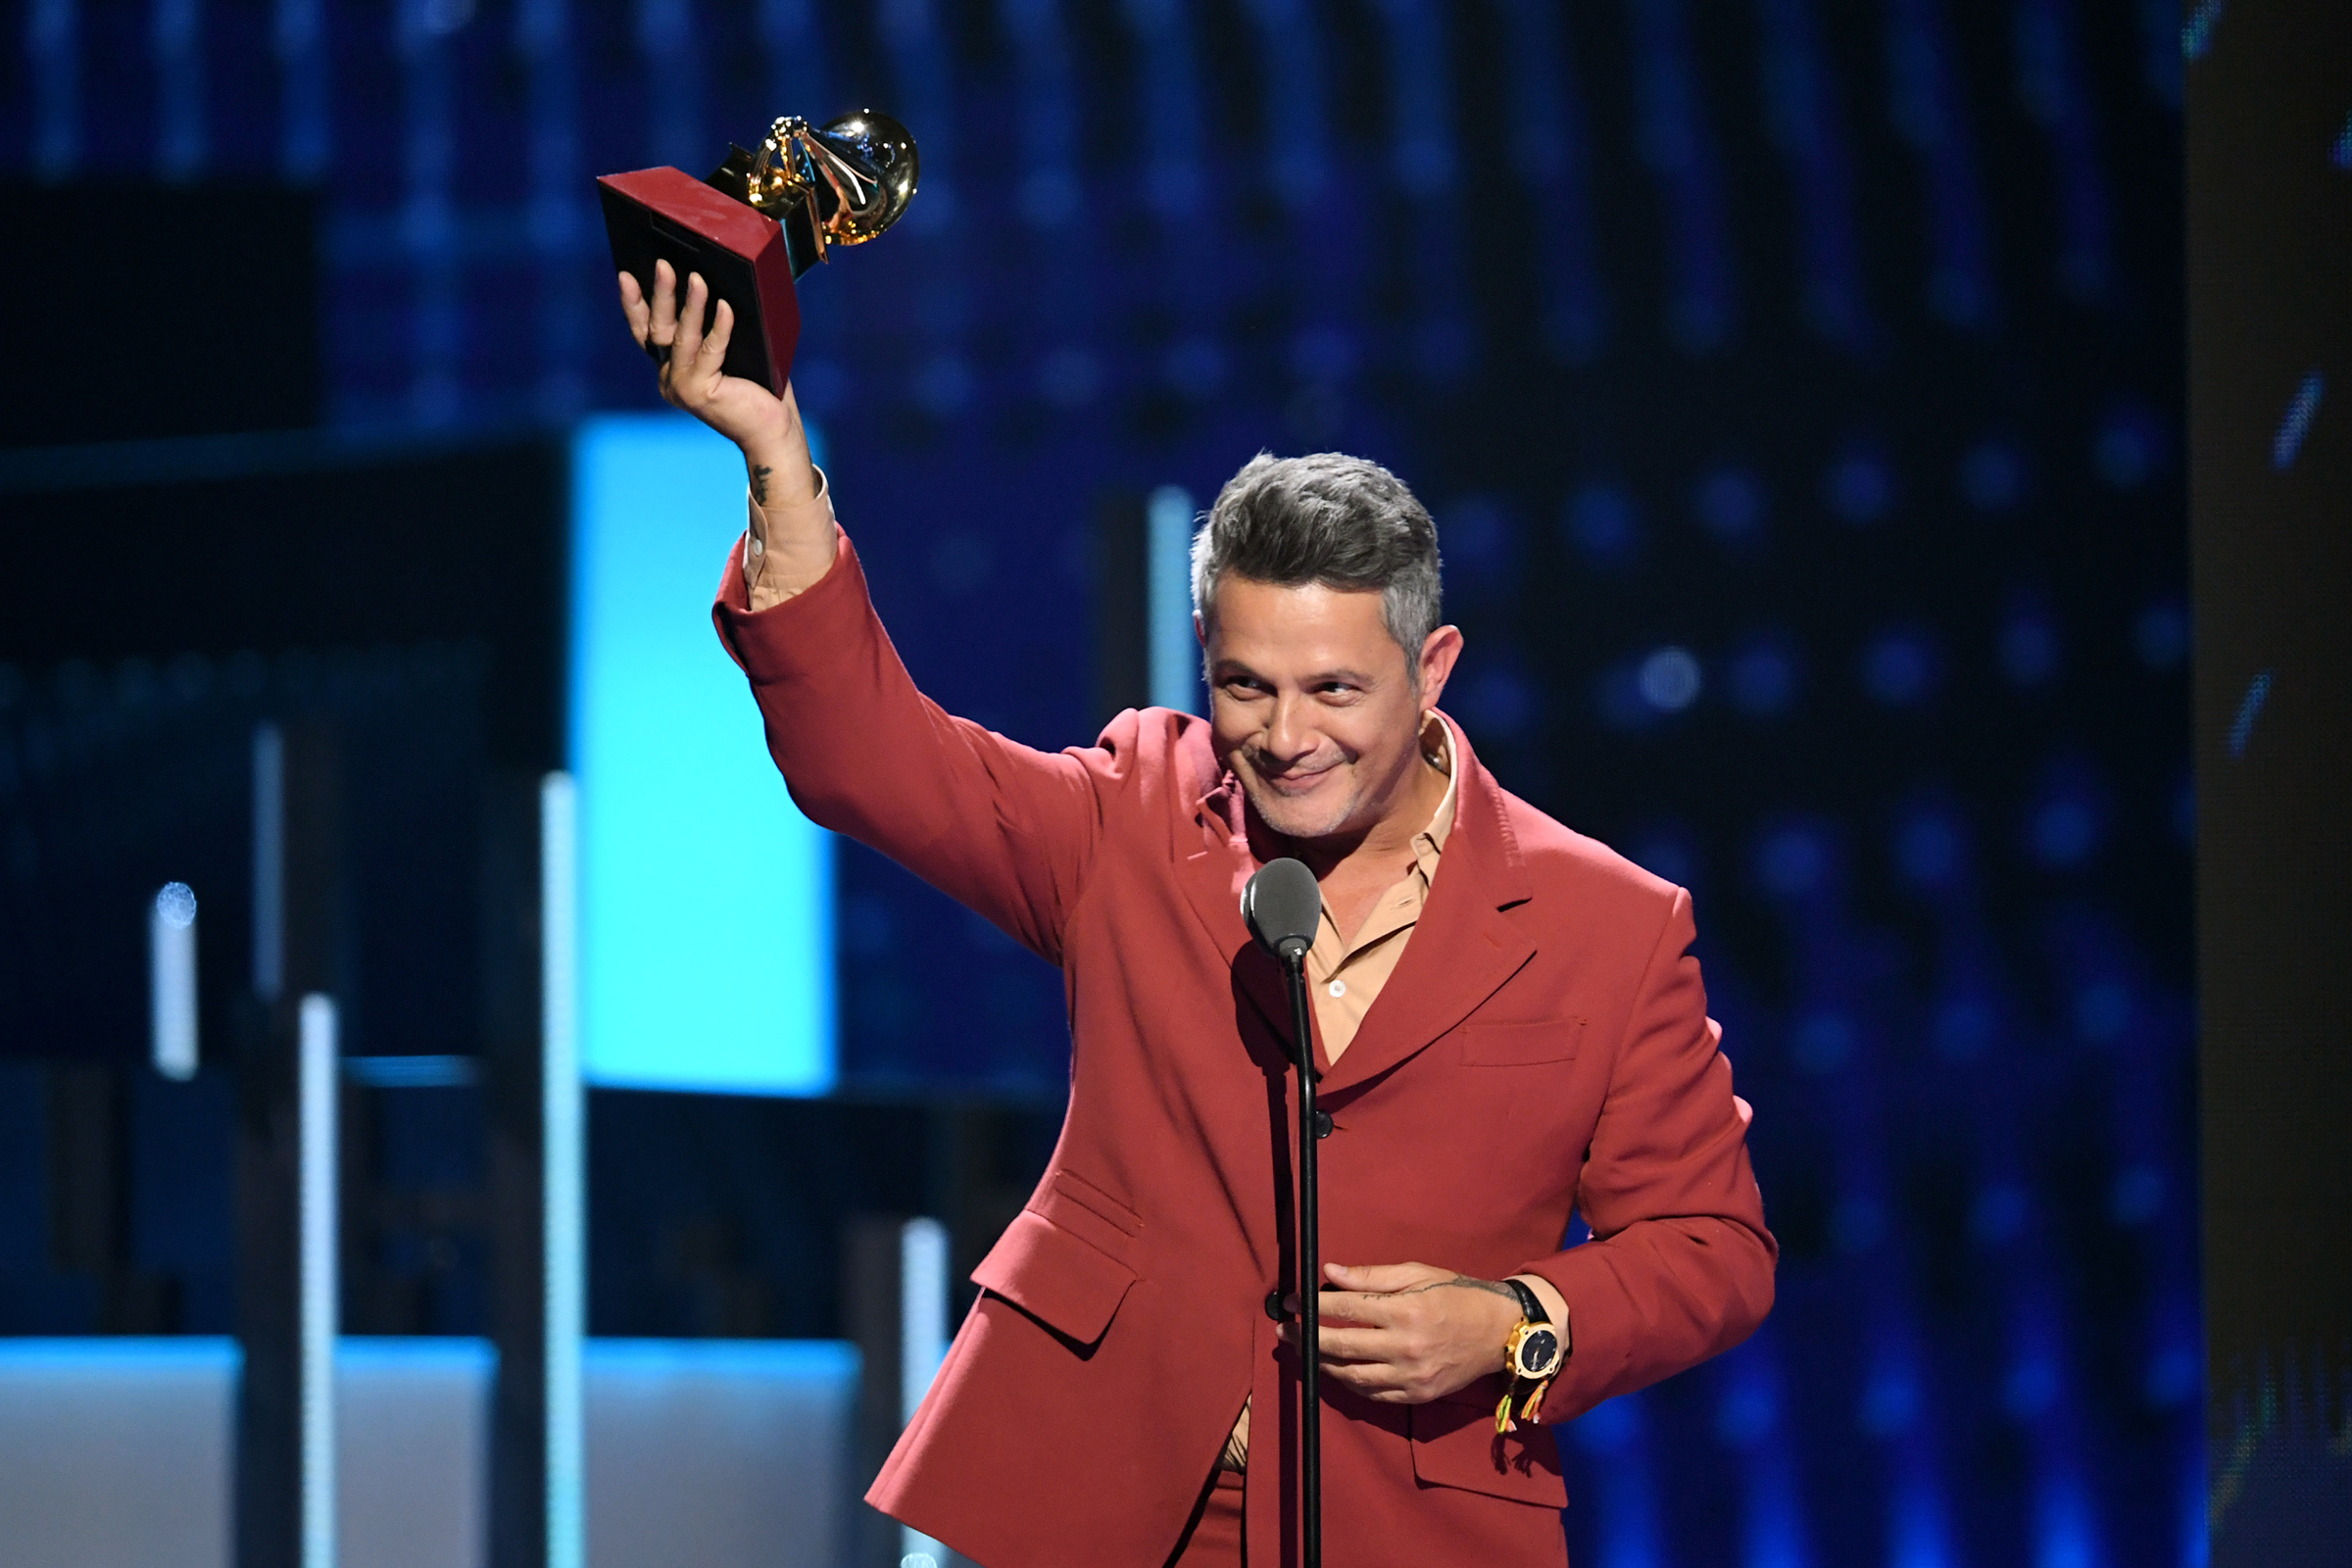 latin grammys alejandro sanz camila cabello win record of the year rolling stone https www rollingstone com music music latin alejandro sanz camila cabello win record of the year latin grammys 910829